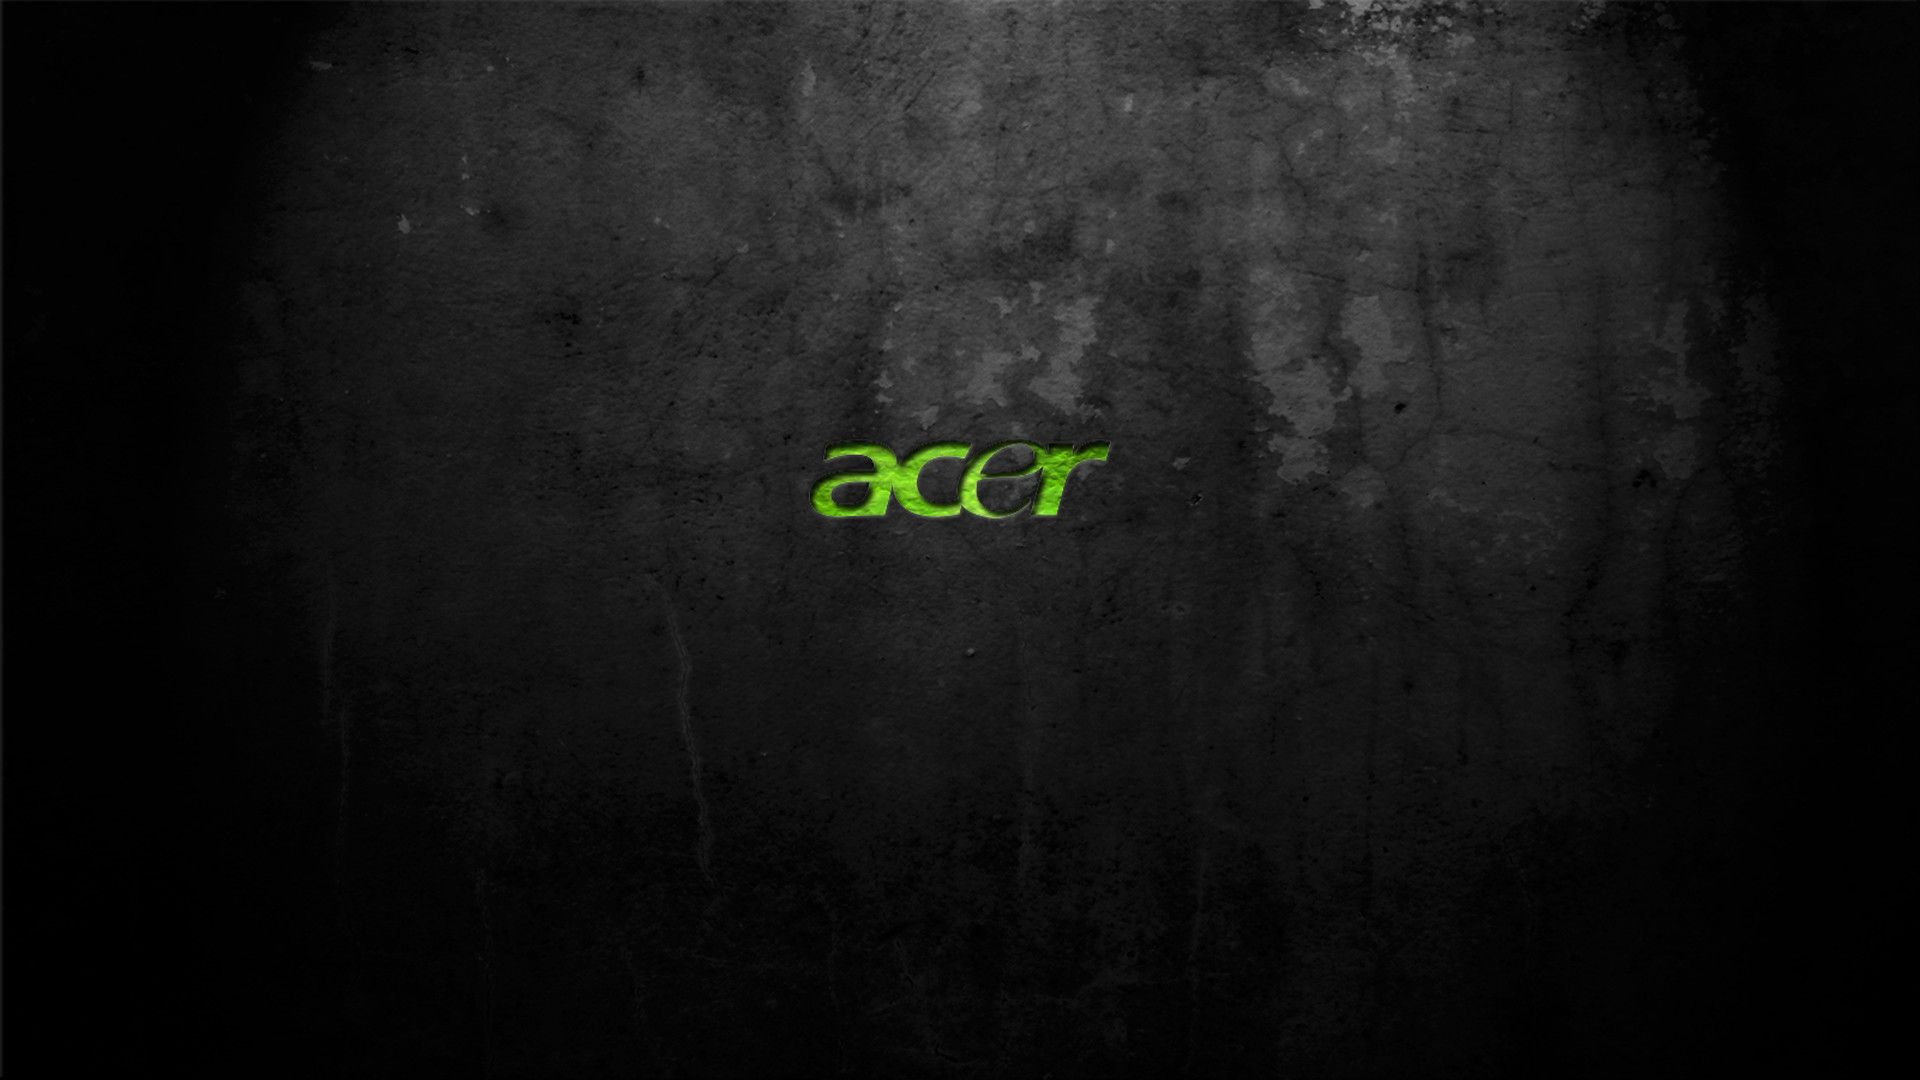 1920x1080 Acer Logo Black Viewing Gallery Acer Wallpaper Colorful Wallpaper Acer black wallpaper hd